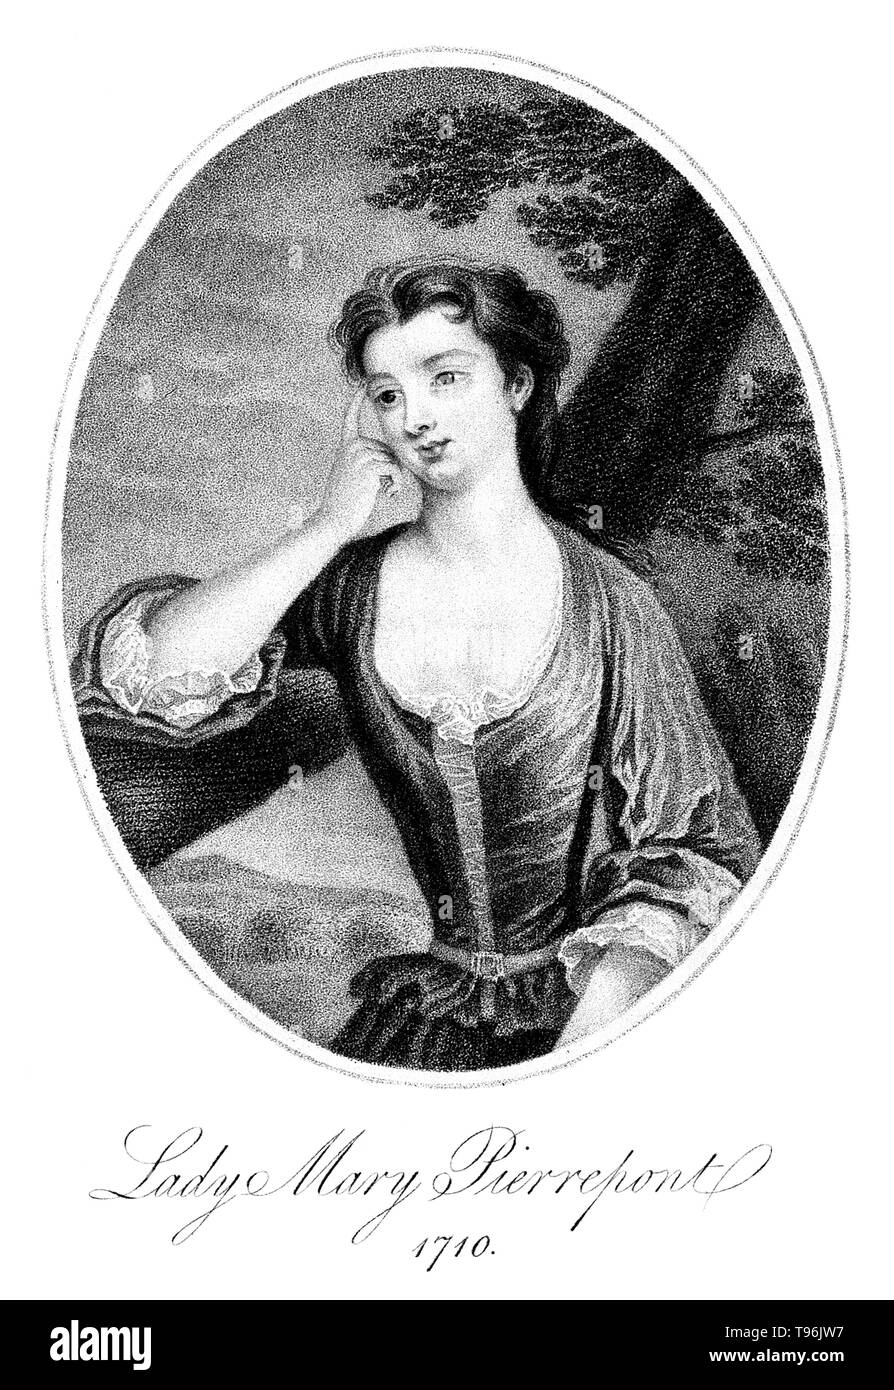 Lady Mary Wortley Montagu (1689 - August 21, 1762) was an English aristocrat, letter writer and poet. Lady Mary is today chiefly remembered for her travels to the Ottoman Empire, as wife to the British ambassador to Turkey. The story of this voyage and of her observations of Eastern life is told in Letters from Turkey. During her visit she was charmed by the beauty and hospitality of the Ottoman women she encountered. She wrote about misconceptions previous travelers, specifically male travelers, had recorded about the religion, traditions and the treatment of women in the Ottoman Empire. Her  - Stock Image